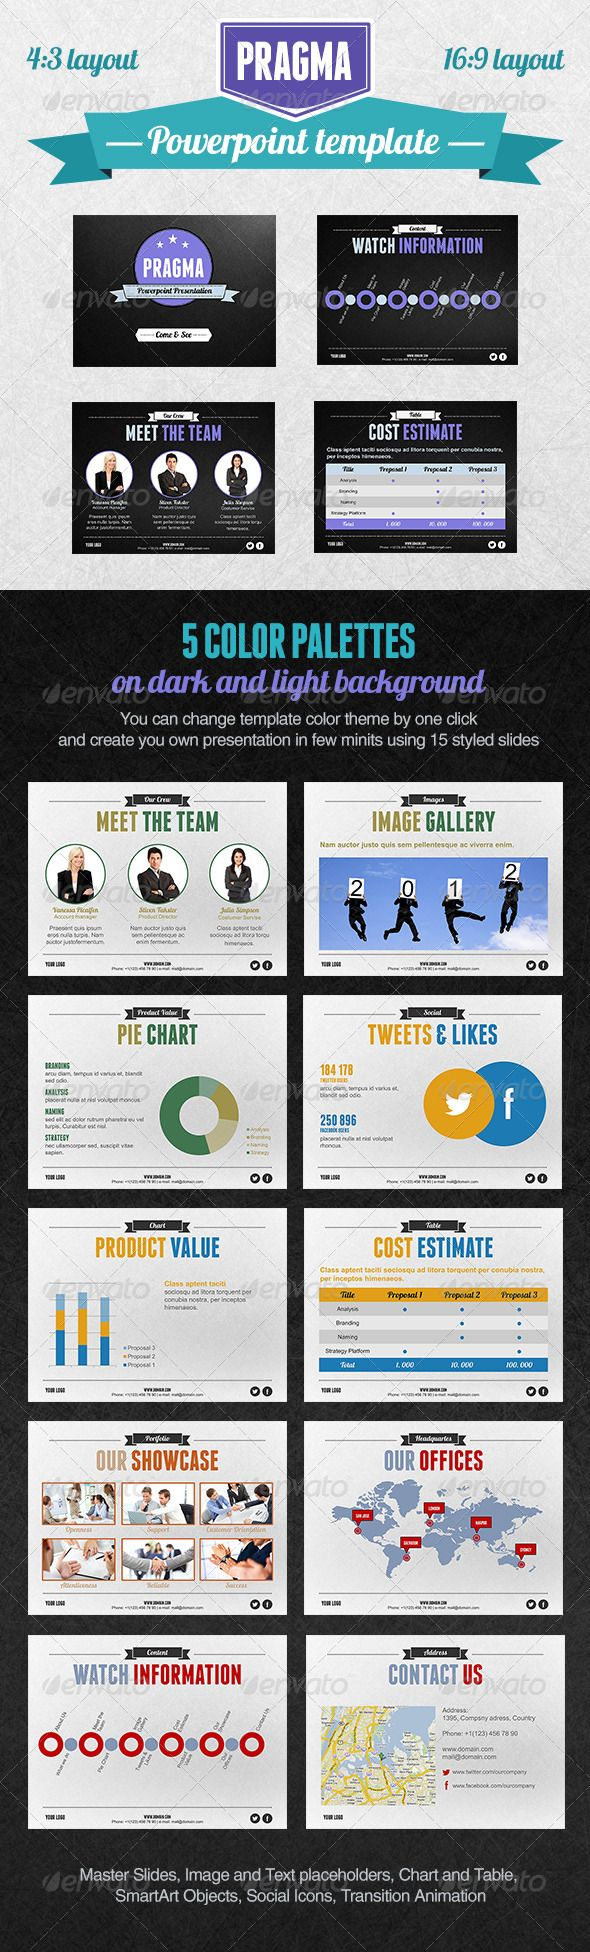 Pragma PowerPoint Presentation Template